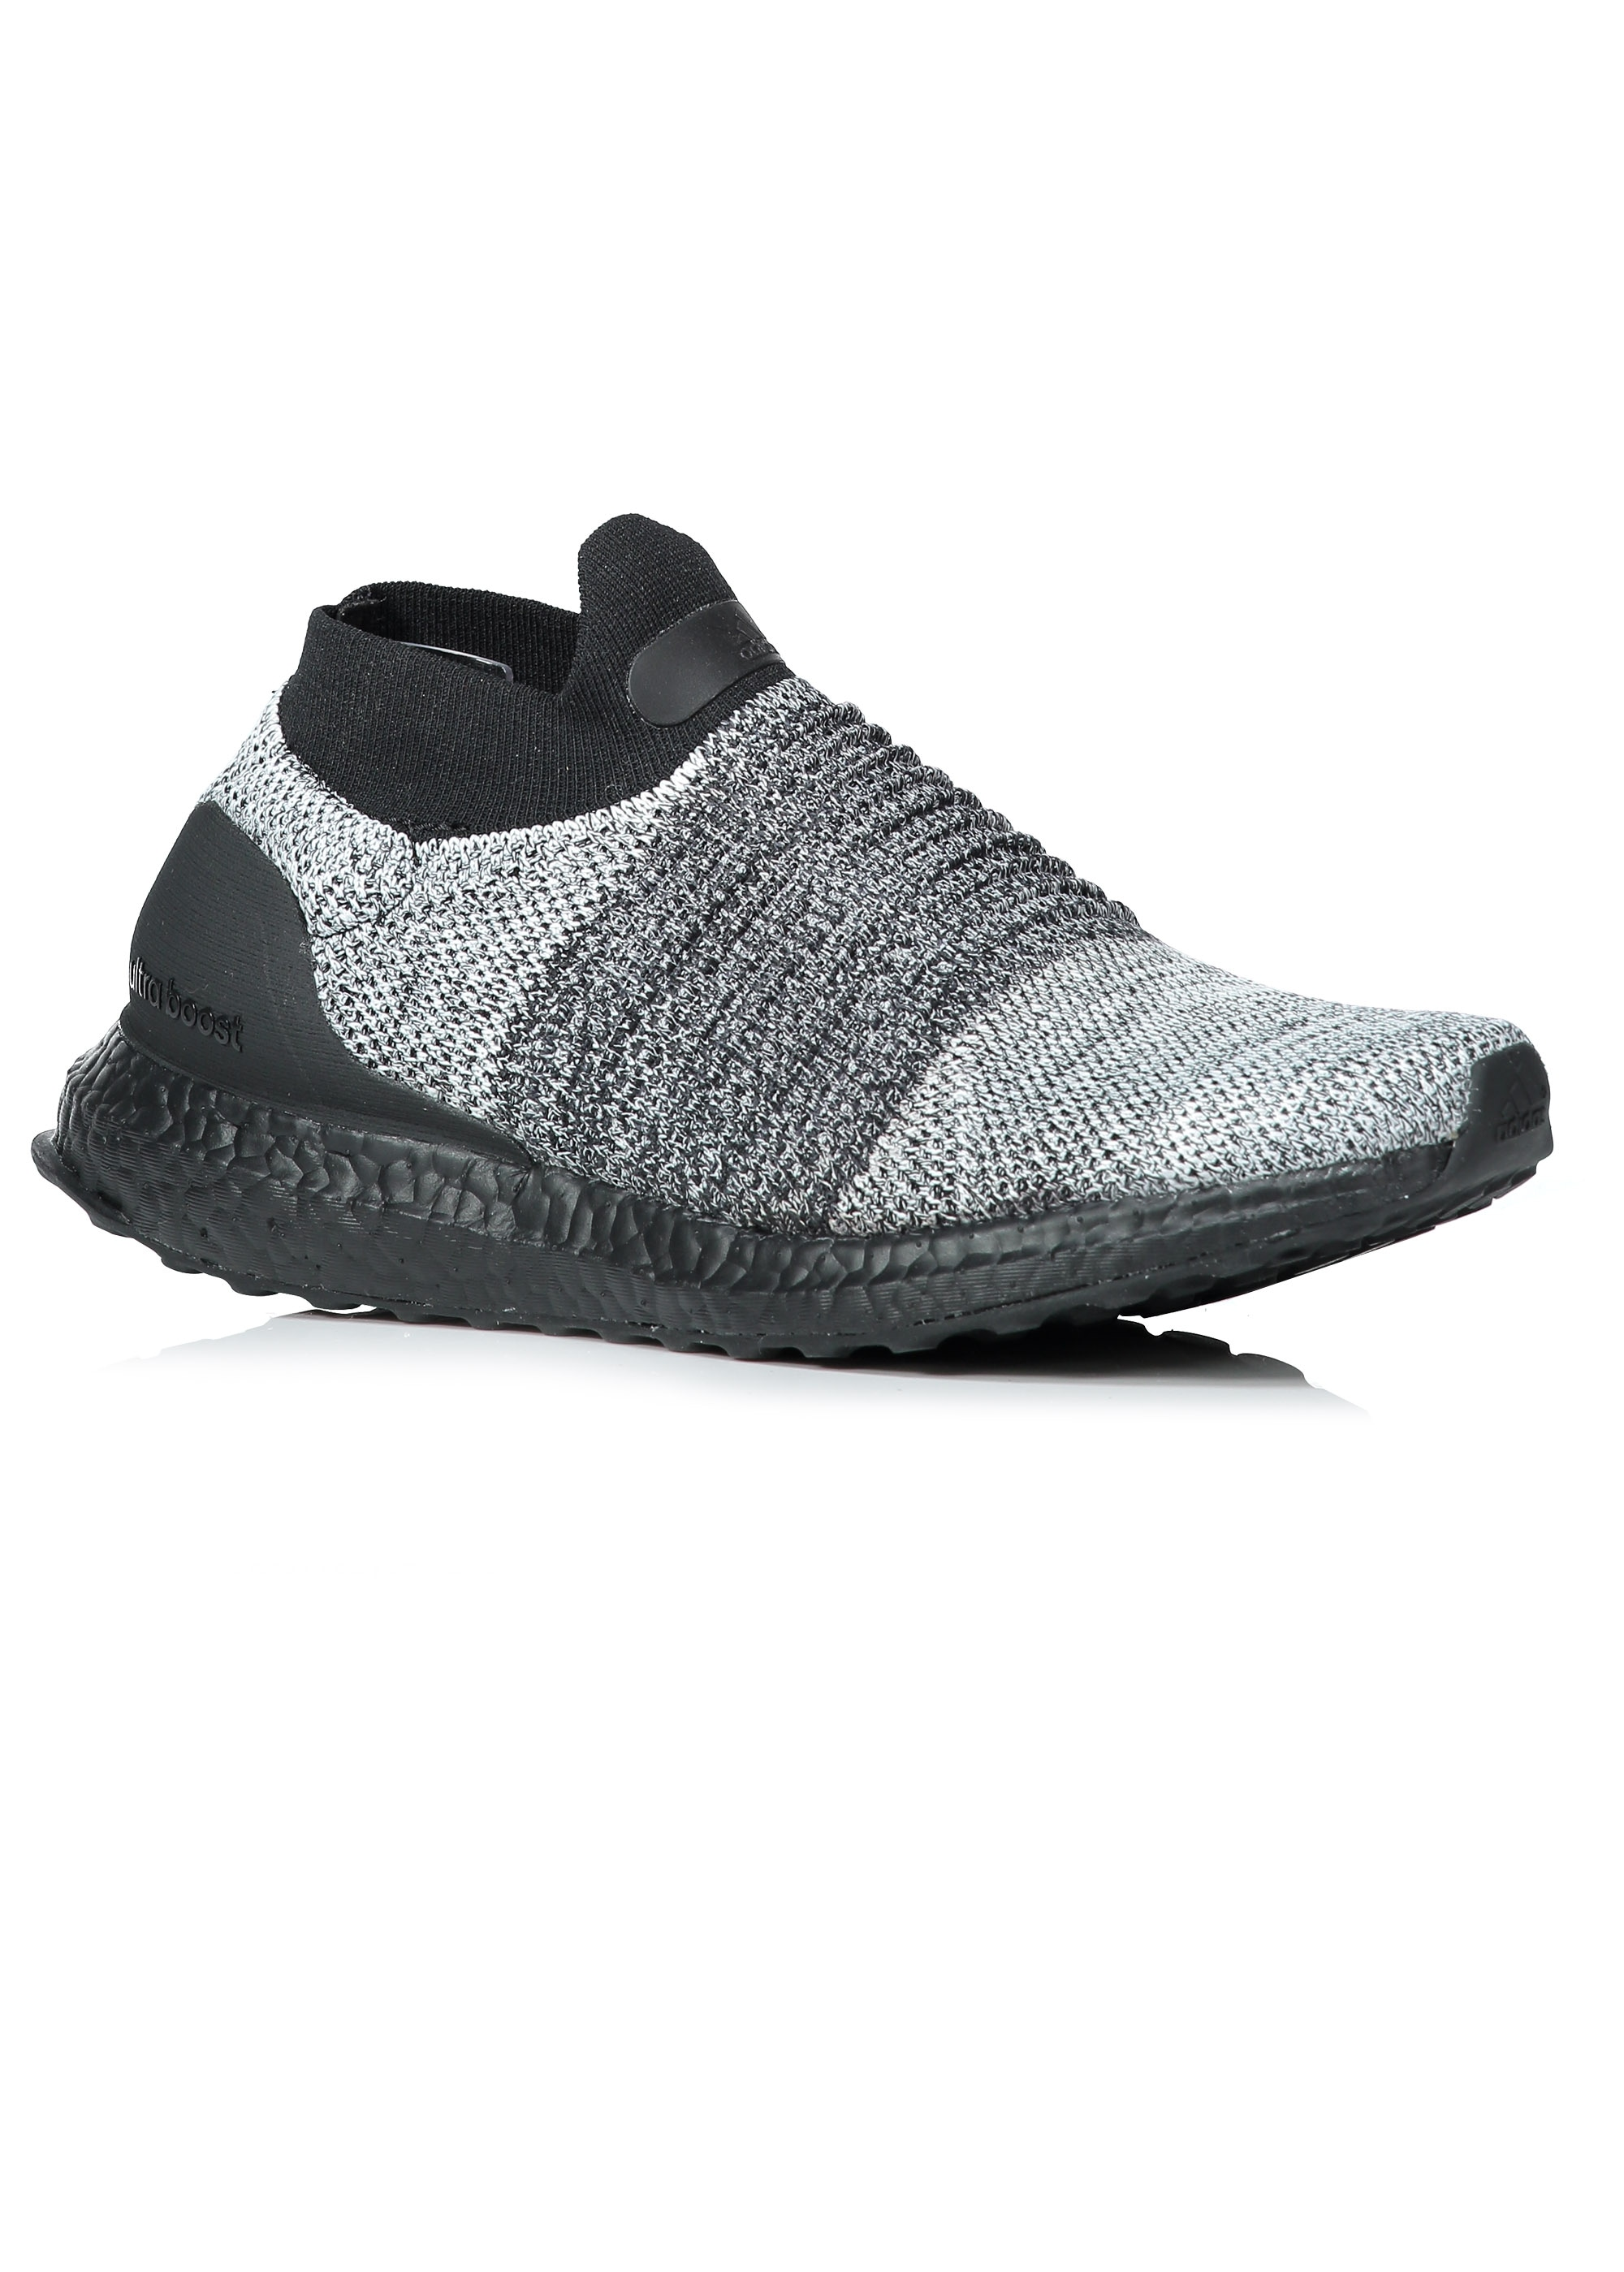 176e7c846ae50 adidas Originals Footwear Ultraboost Laceless - Black - Triads Mens ...